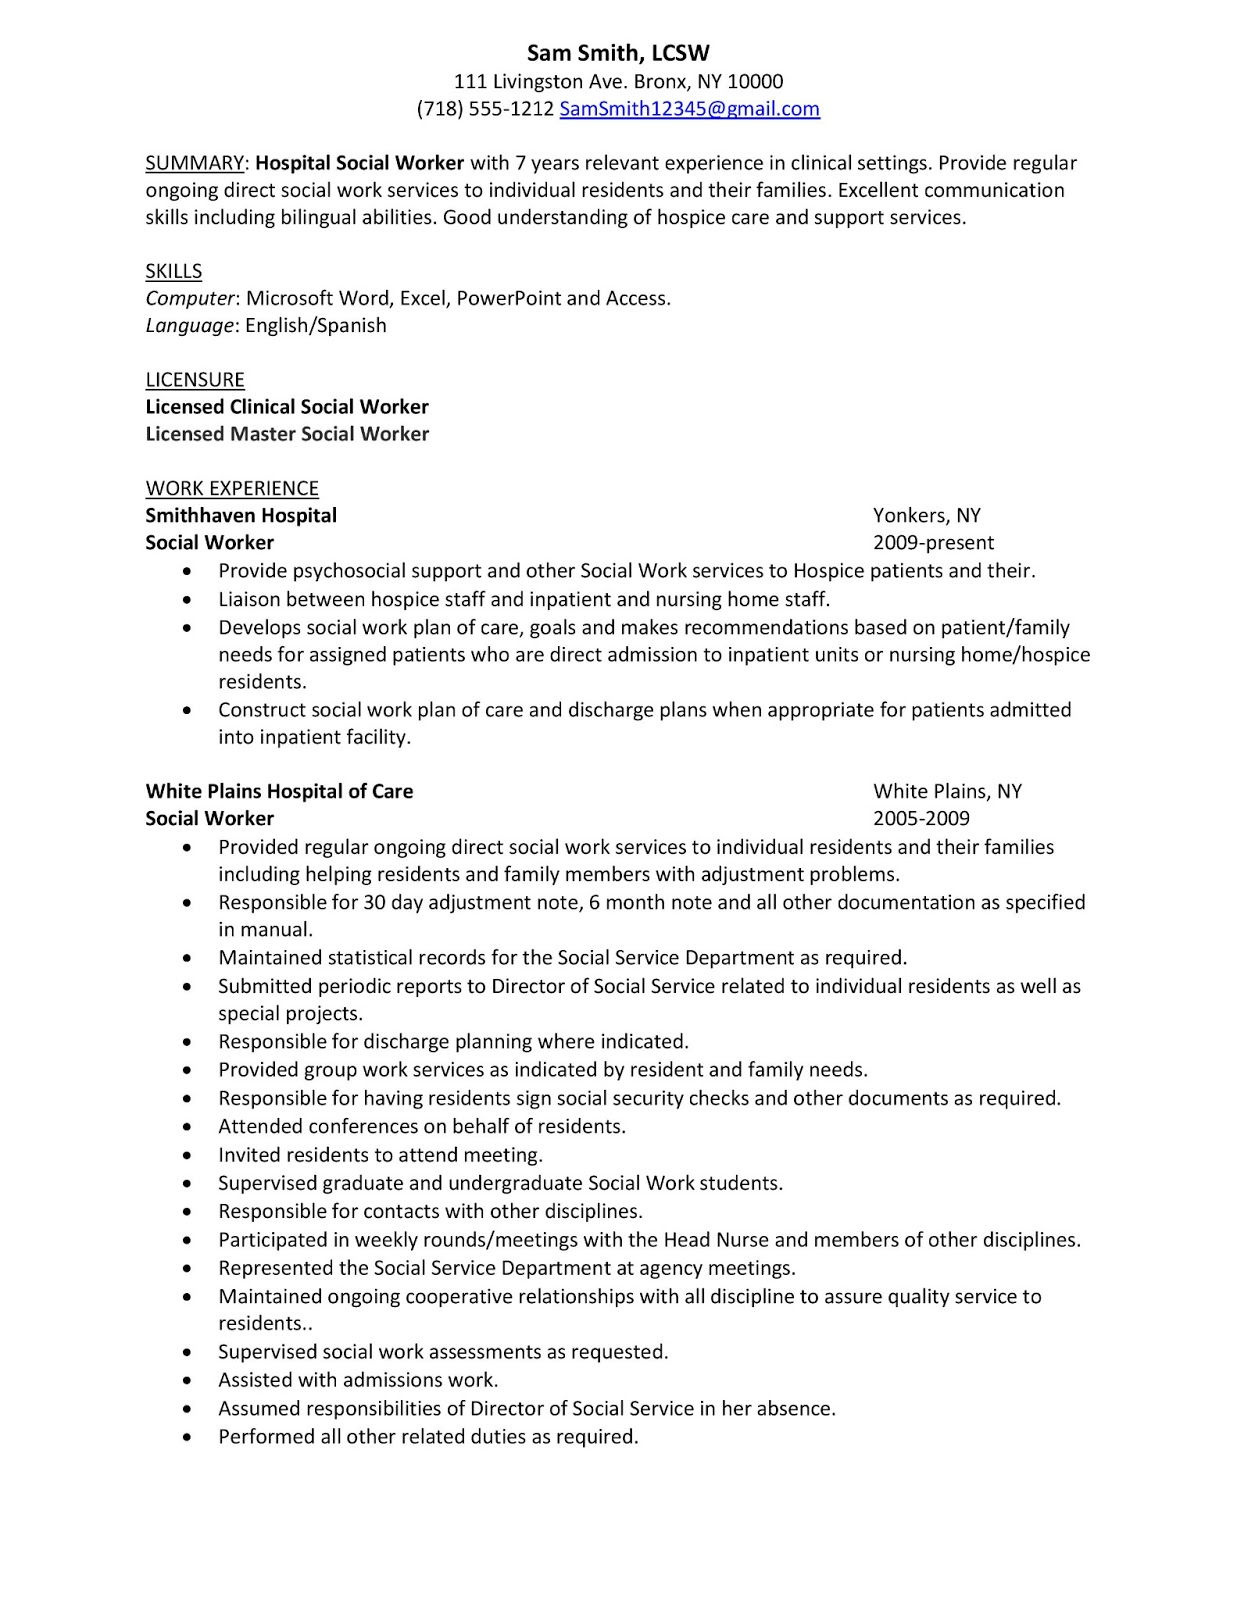 job titles social social clinical social